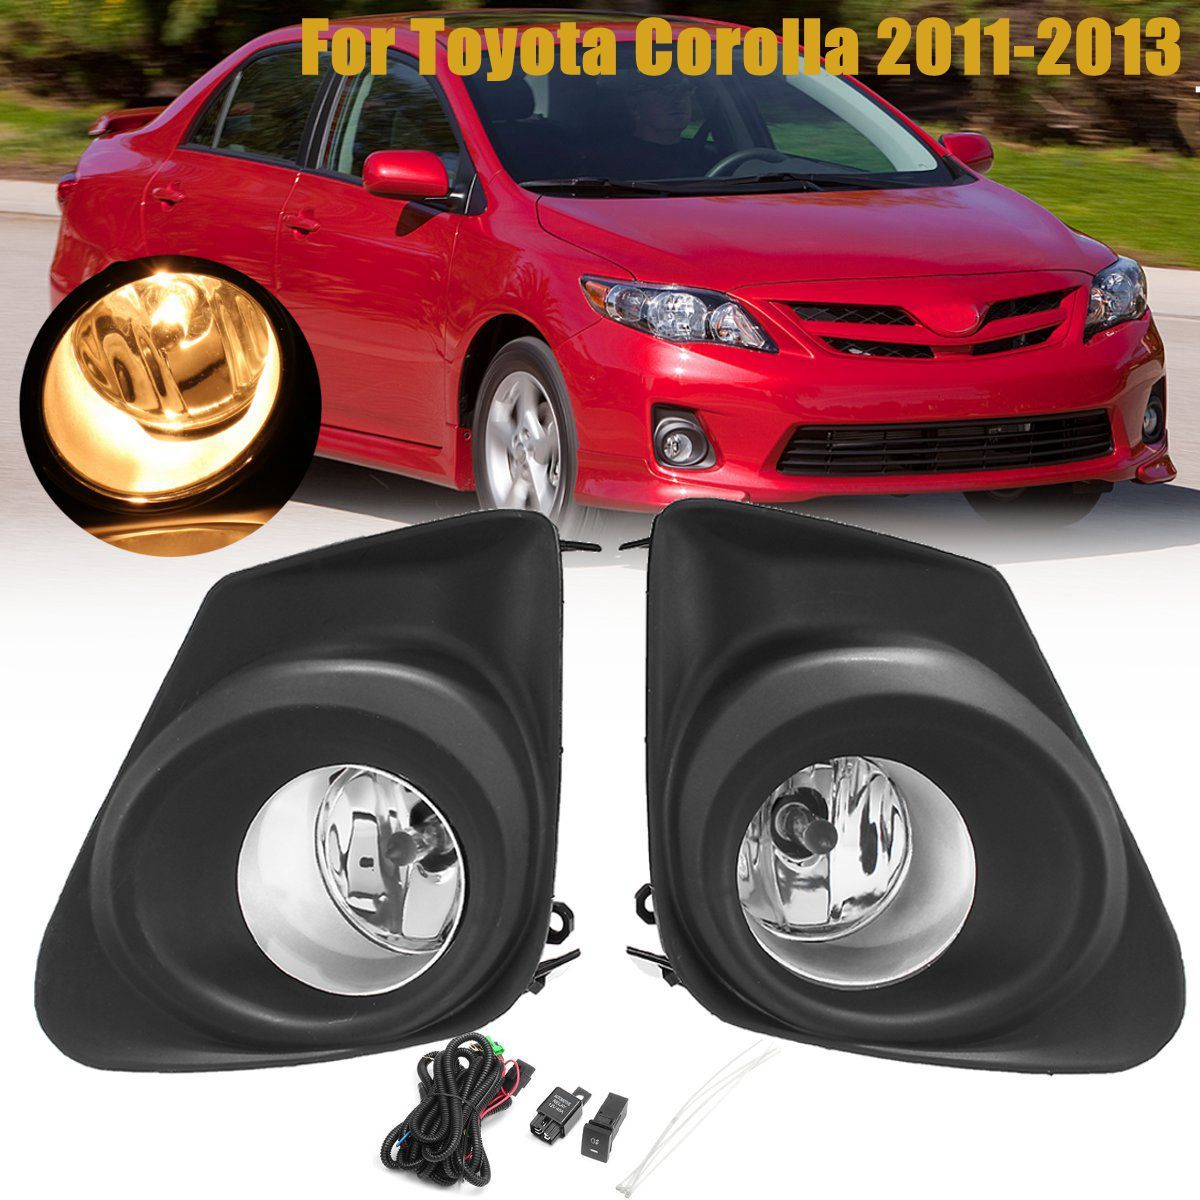 2Pcs Car Front Bumper Fog Lights Lamp With H11 Bulb Switch + 2pcs Grille Cover Yellow Lamp For Toyota Corolla 2011 2012 2013